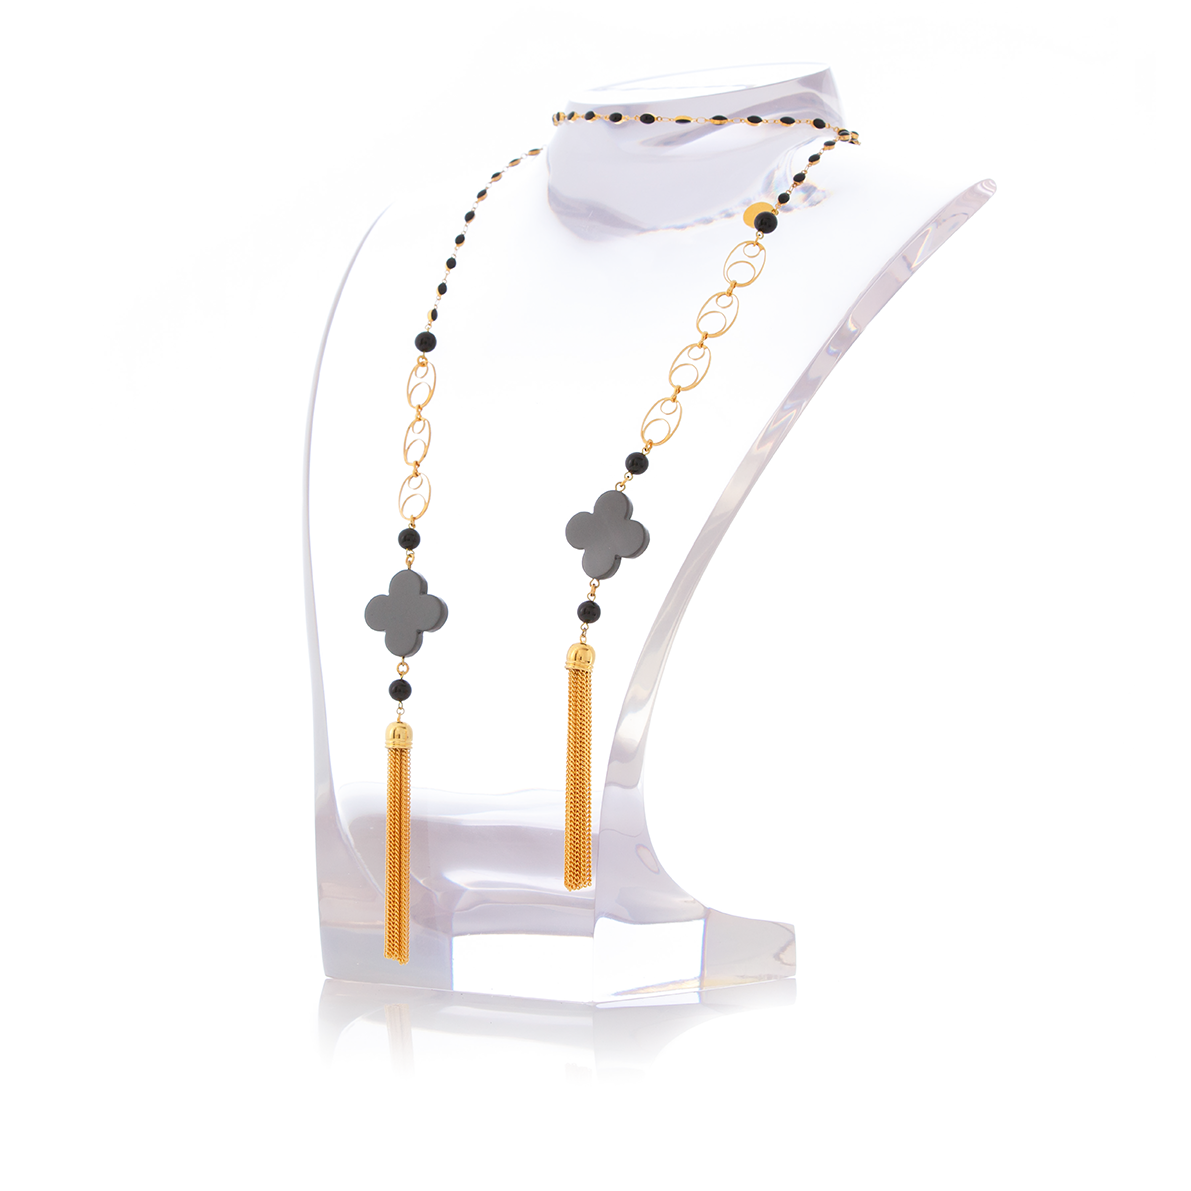 MAURESK Double Tasseled Grey Lacquered Horn and Black Agate Necklace